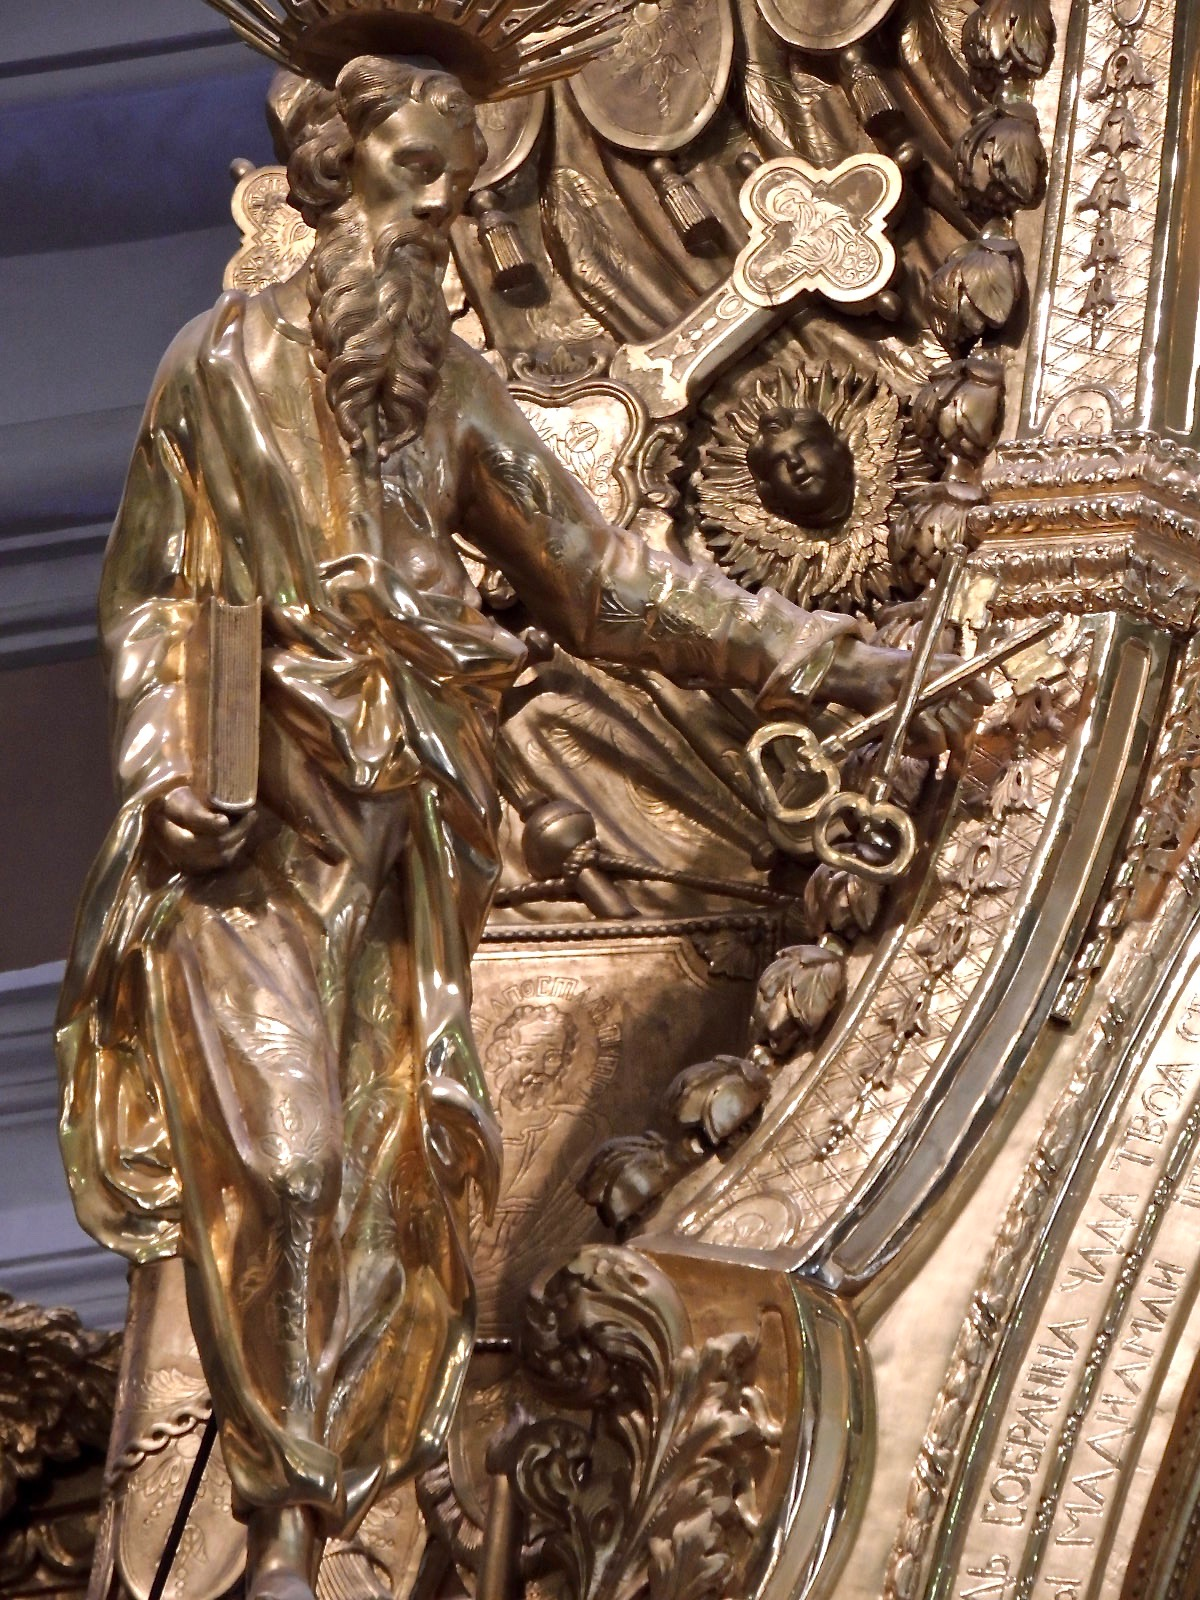 St. Peter holding the keys to heaven.